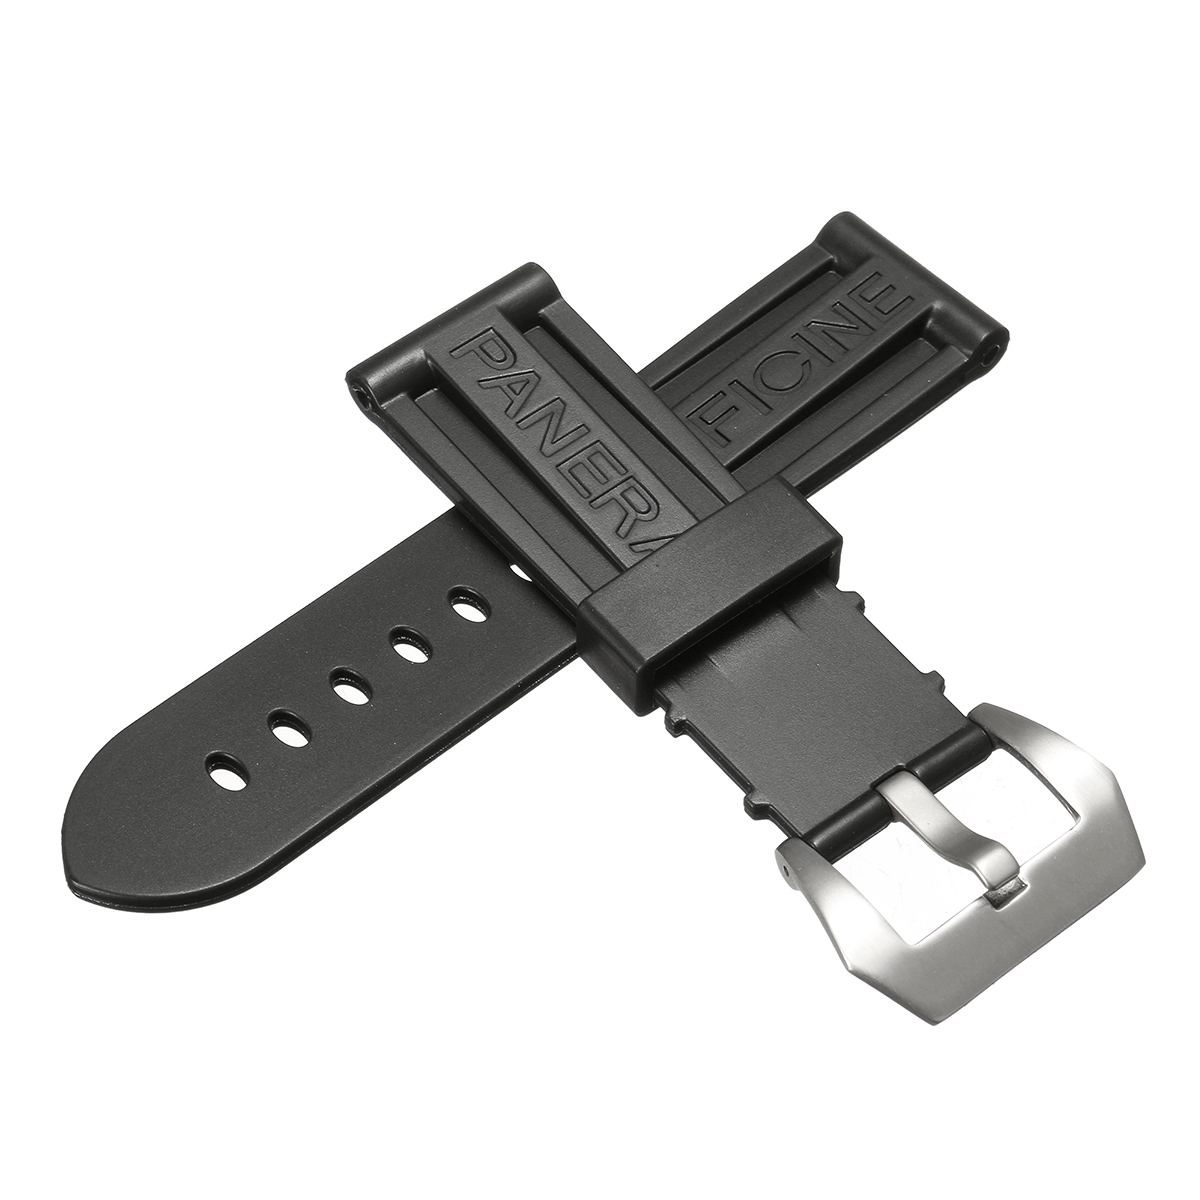 Bakeey 24mm Wristwatch Strap Silicon Rubber Diving Watch Band for PANERAI